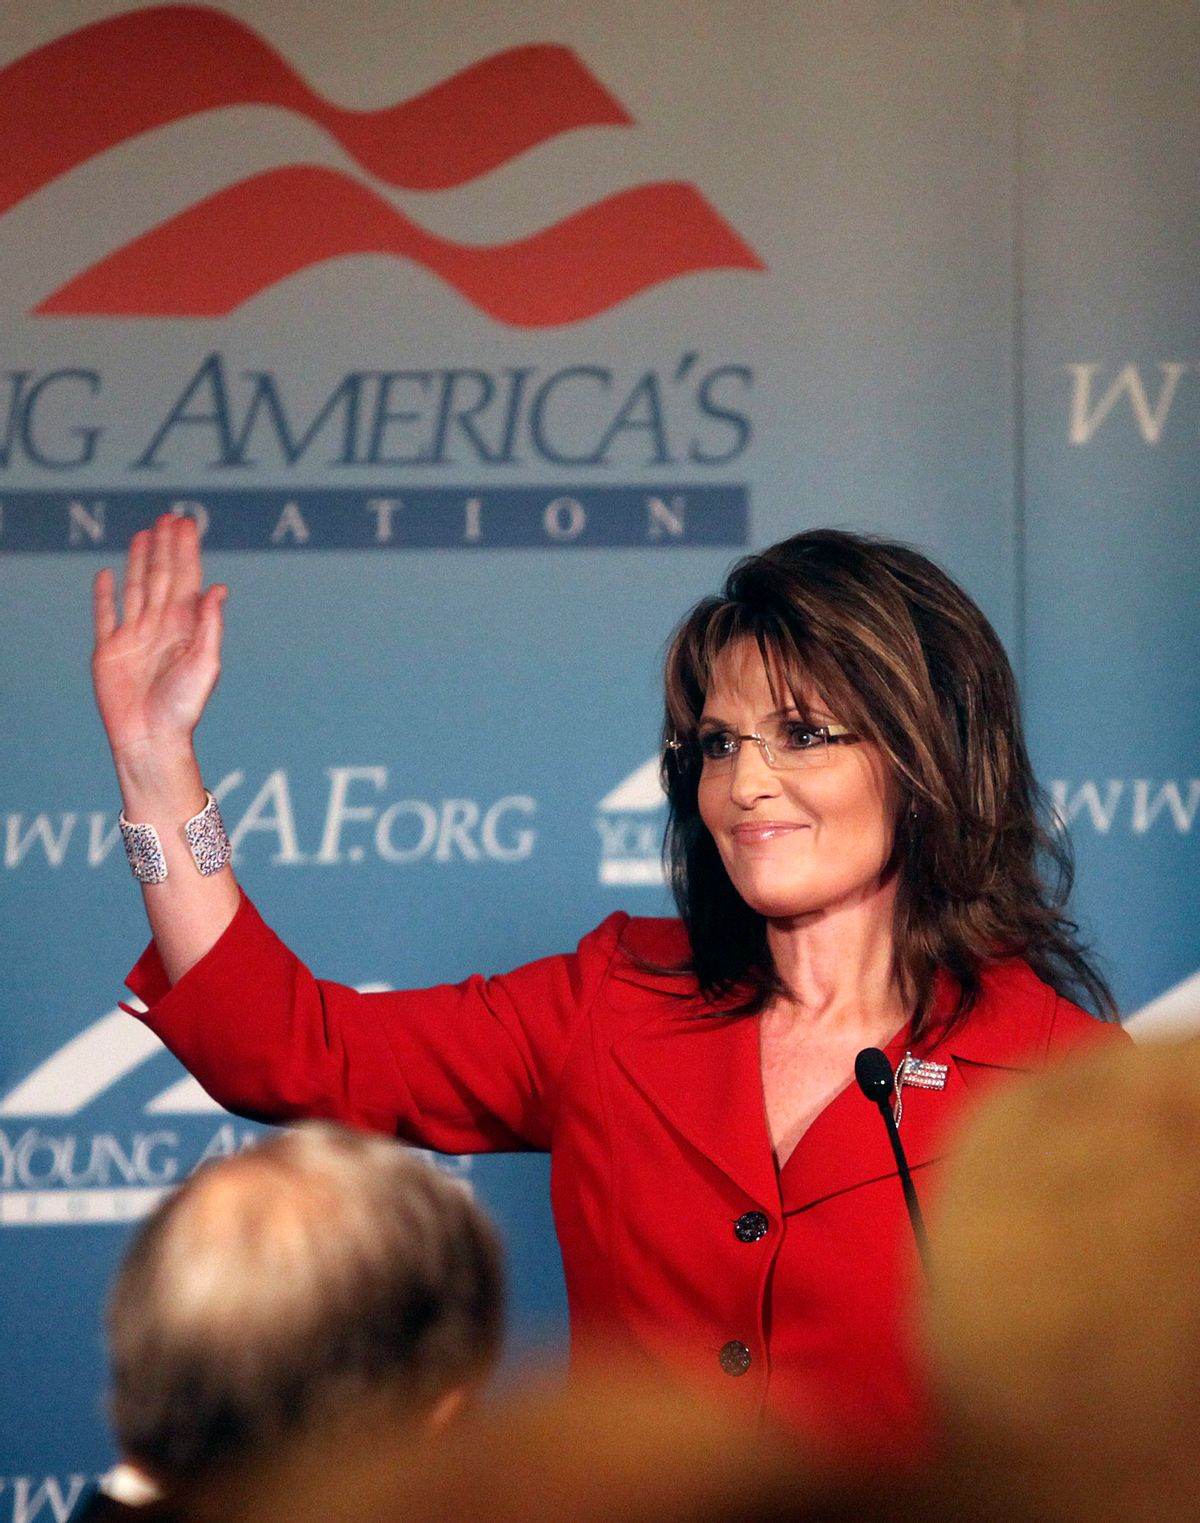 Former Republican vice Presidential candidate and Alaskan Governor Sarah Palin receives a standing ovation as she arrives at the Reagan Ranch Center in Santa Barbara, Friday Feb. 4, 2011. Palin was the headline speaker for  the Ronald Reagan Centennial celebration opening reception hosted by the Young Americans Foundation.  (AP Photo/Spencer Weiner) (Spencer Weiner)